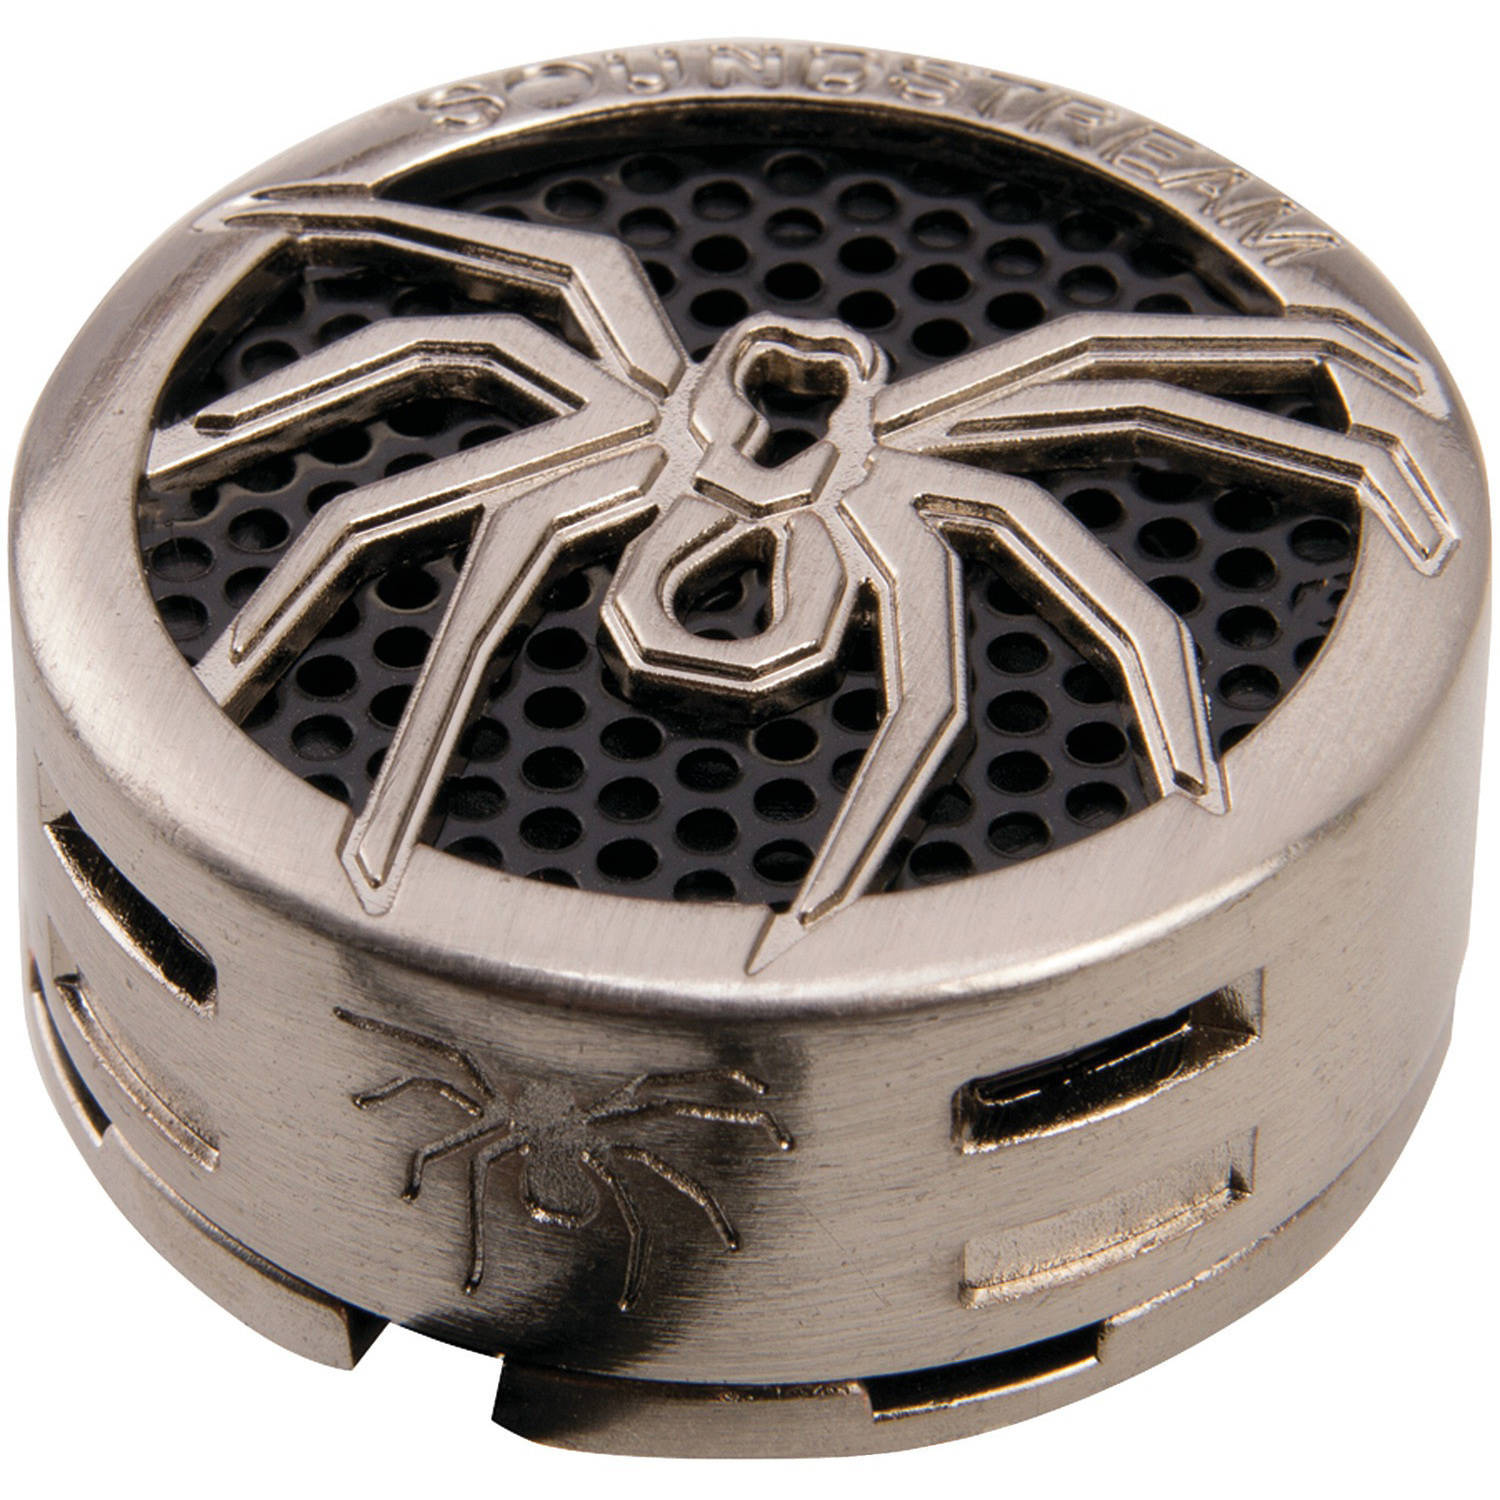 "Soundstream TWS.4 Tantalum Series 1"" 100-Watt Aluminum Dome Tweeter"